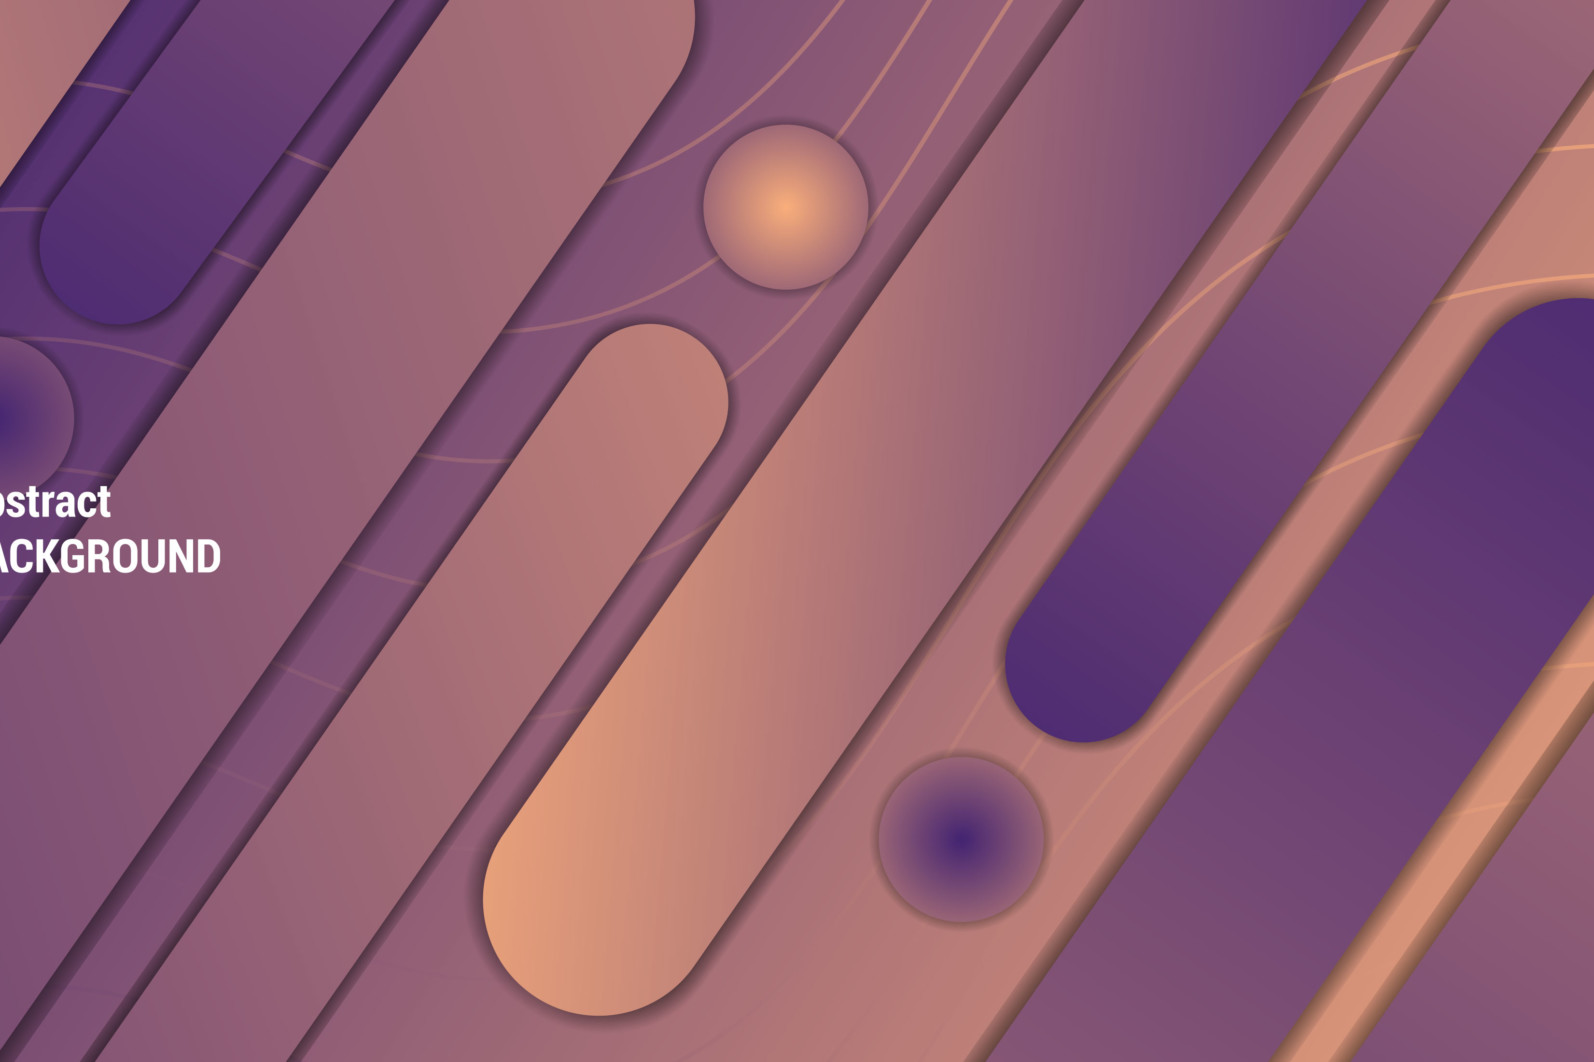 Display Pattern Backgrounds V2 - AB 4 scaled -